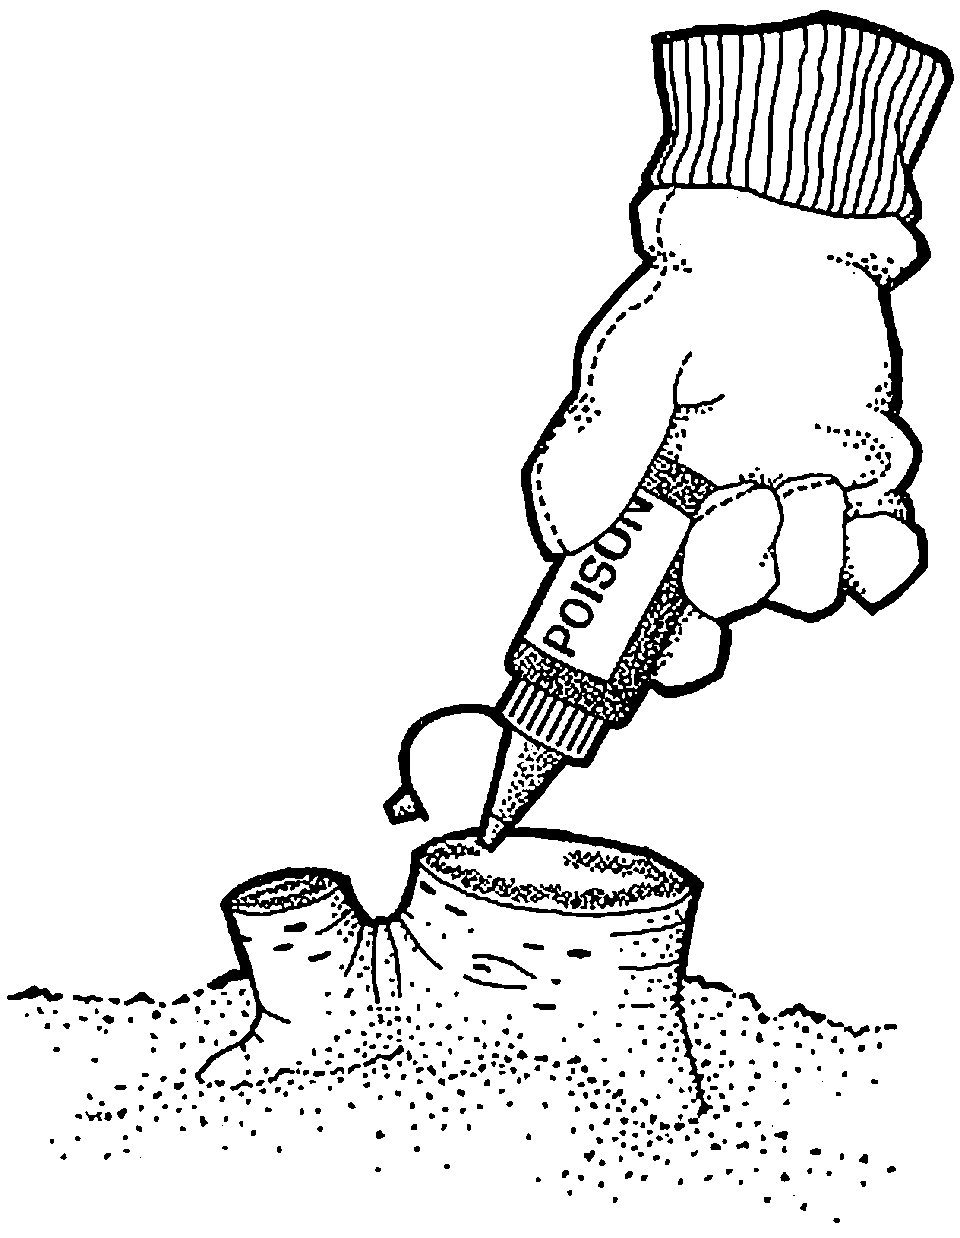 Applying poison to cut stump from squeeze bottle